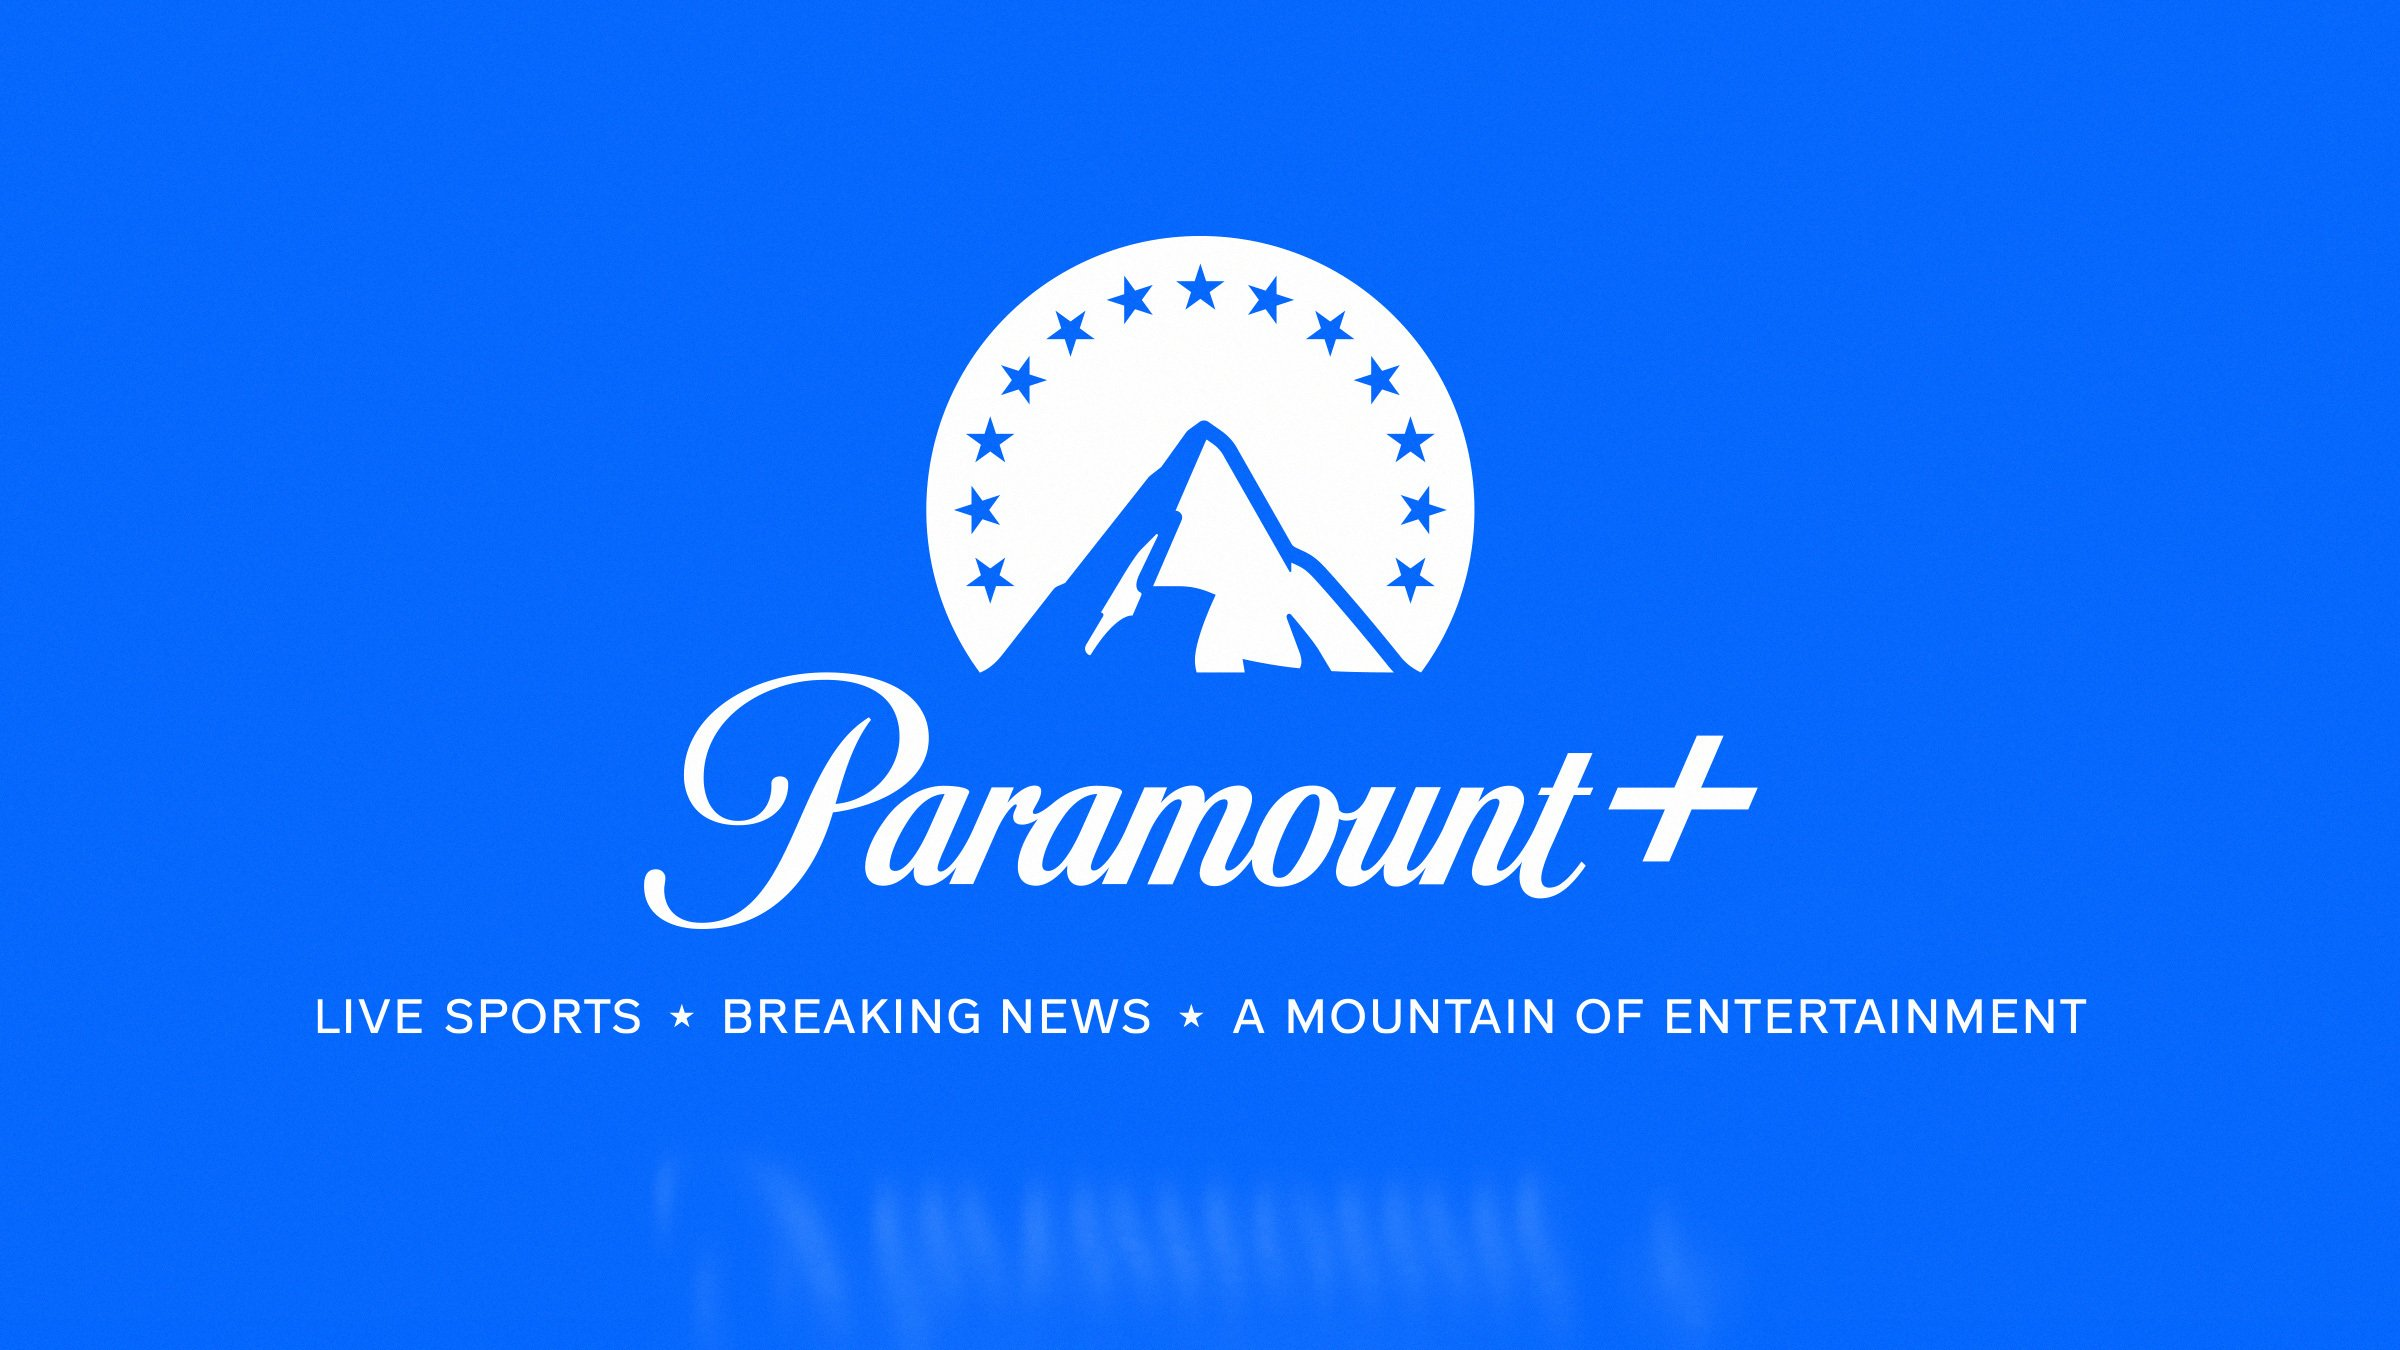 CBS All Access will become Paramount+ in 2021